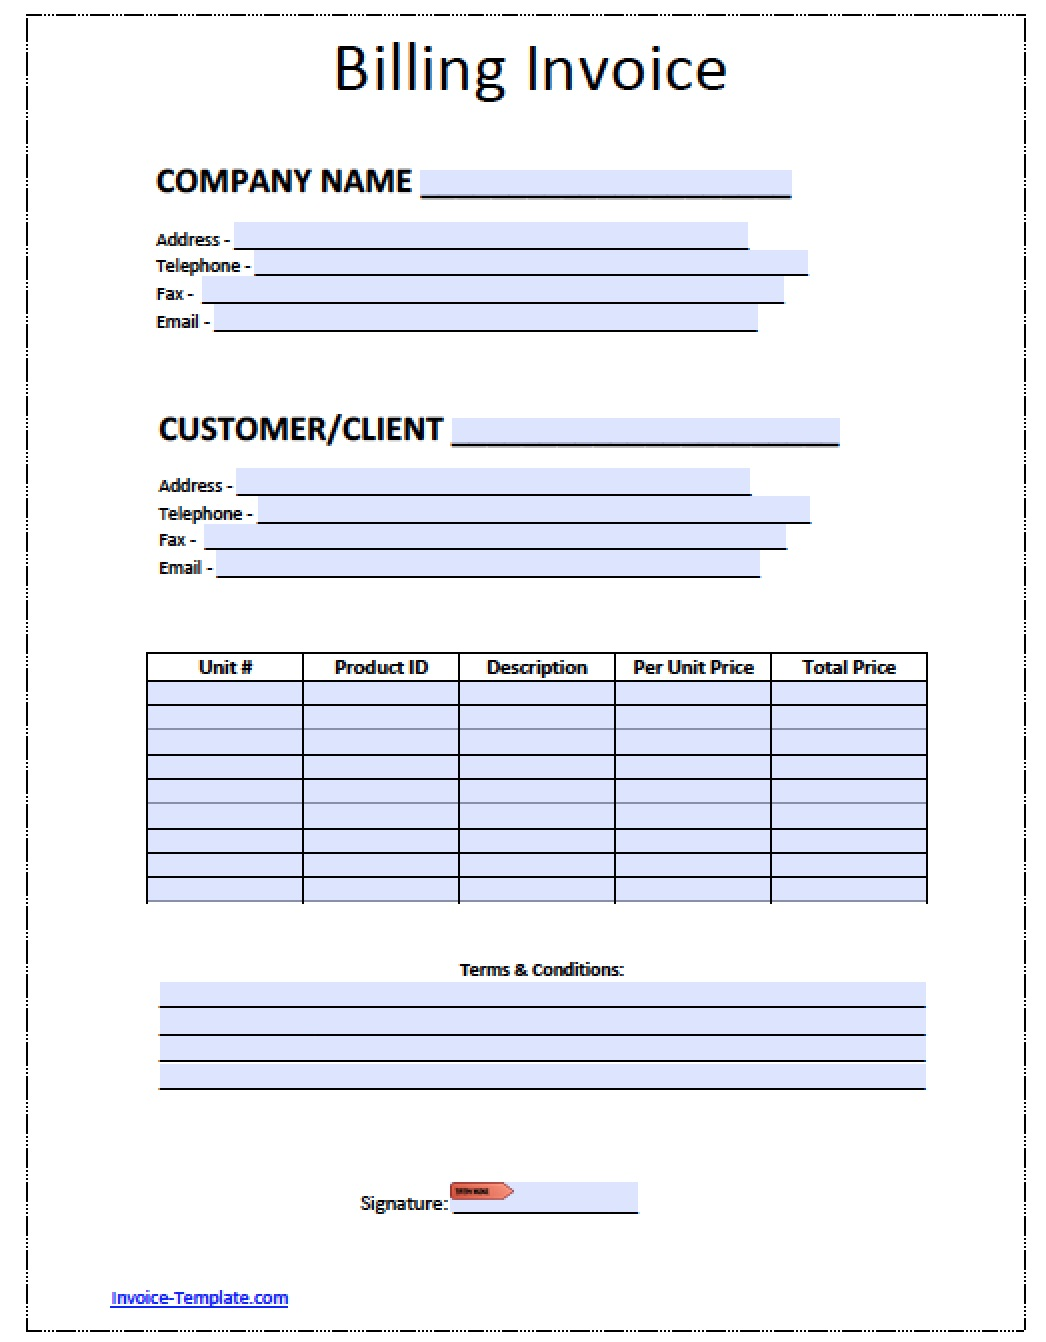 Howcanigettallerus  Gorgeous Billing Invoice Invoices Faq U Cloudflare Support Billing  With Fascinating Free Billing Invoice Template  Excel  Pdf  Word Doc  Billing With Extraordinary Invoice Discounting Uk Also Invoice Discounting Costs In Addition Invoice Make And Tax Invoice Without Abn As Well As Invoice Format For Services Additionally Invoice Samples In Word From Happytomco With Howcanigettallerus  Fascinating Billing Invoice Invoices Faq U Cloudflare Support Billing  With Extraordinary Free Billing Invoice Template  Excel  Pdf  Word Doc  Billing And Gorgeous Invoice Discounting Uk Also Invoice Discounting Costs In Addition Invoice Make From Happytomco